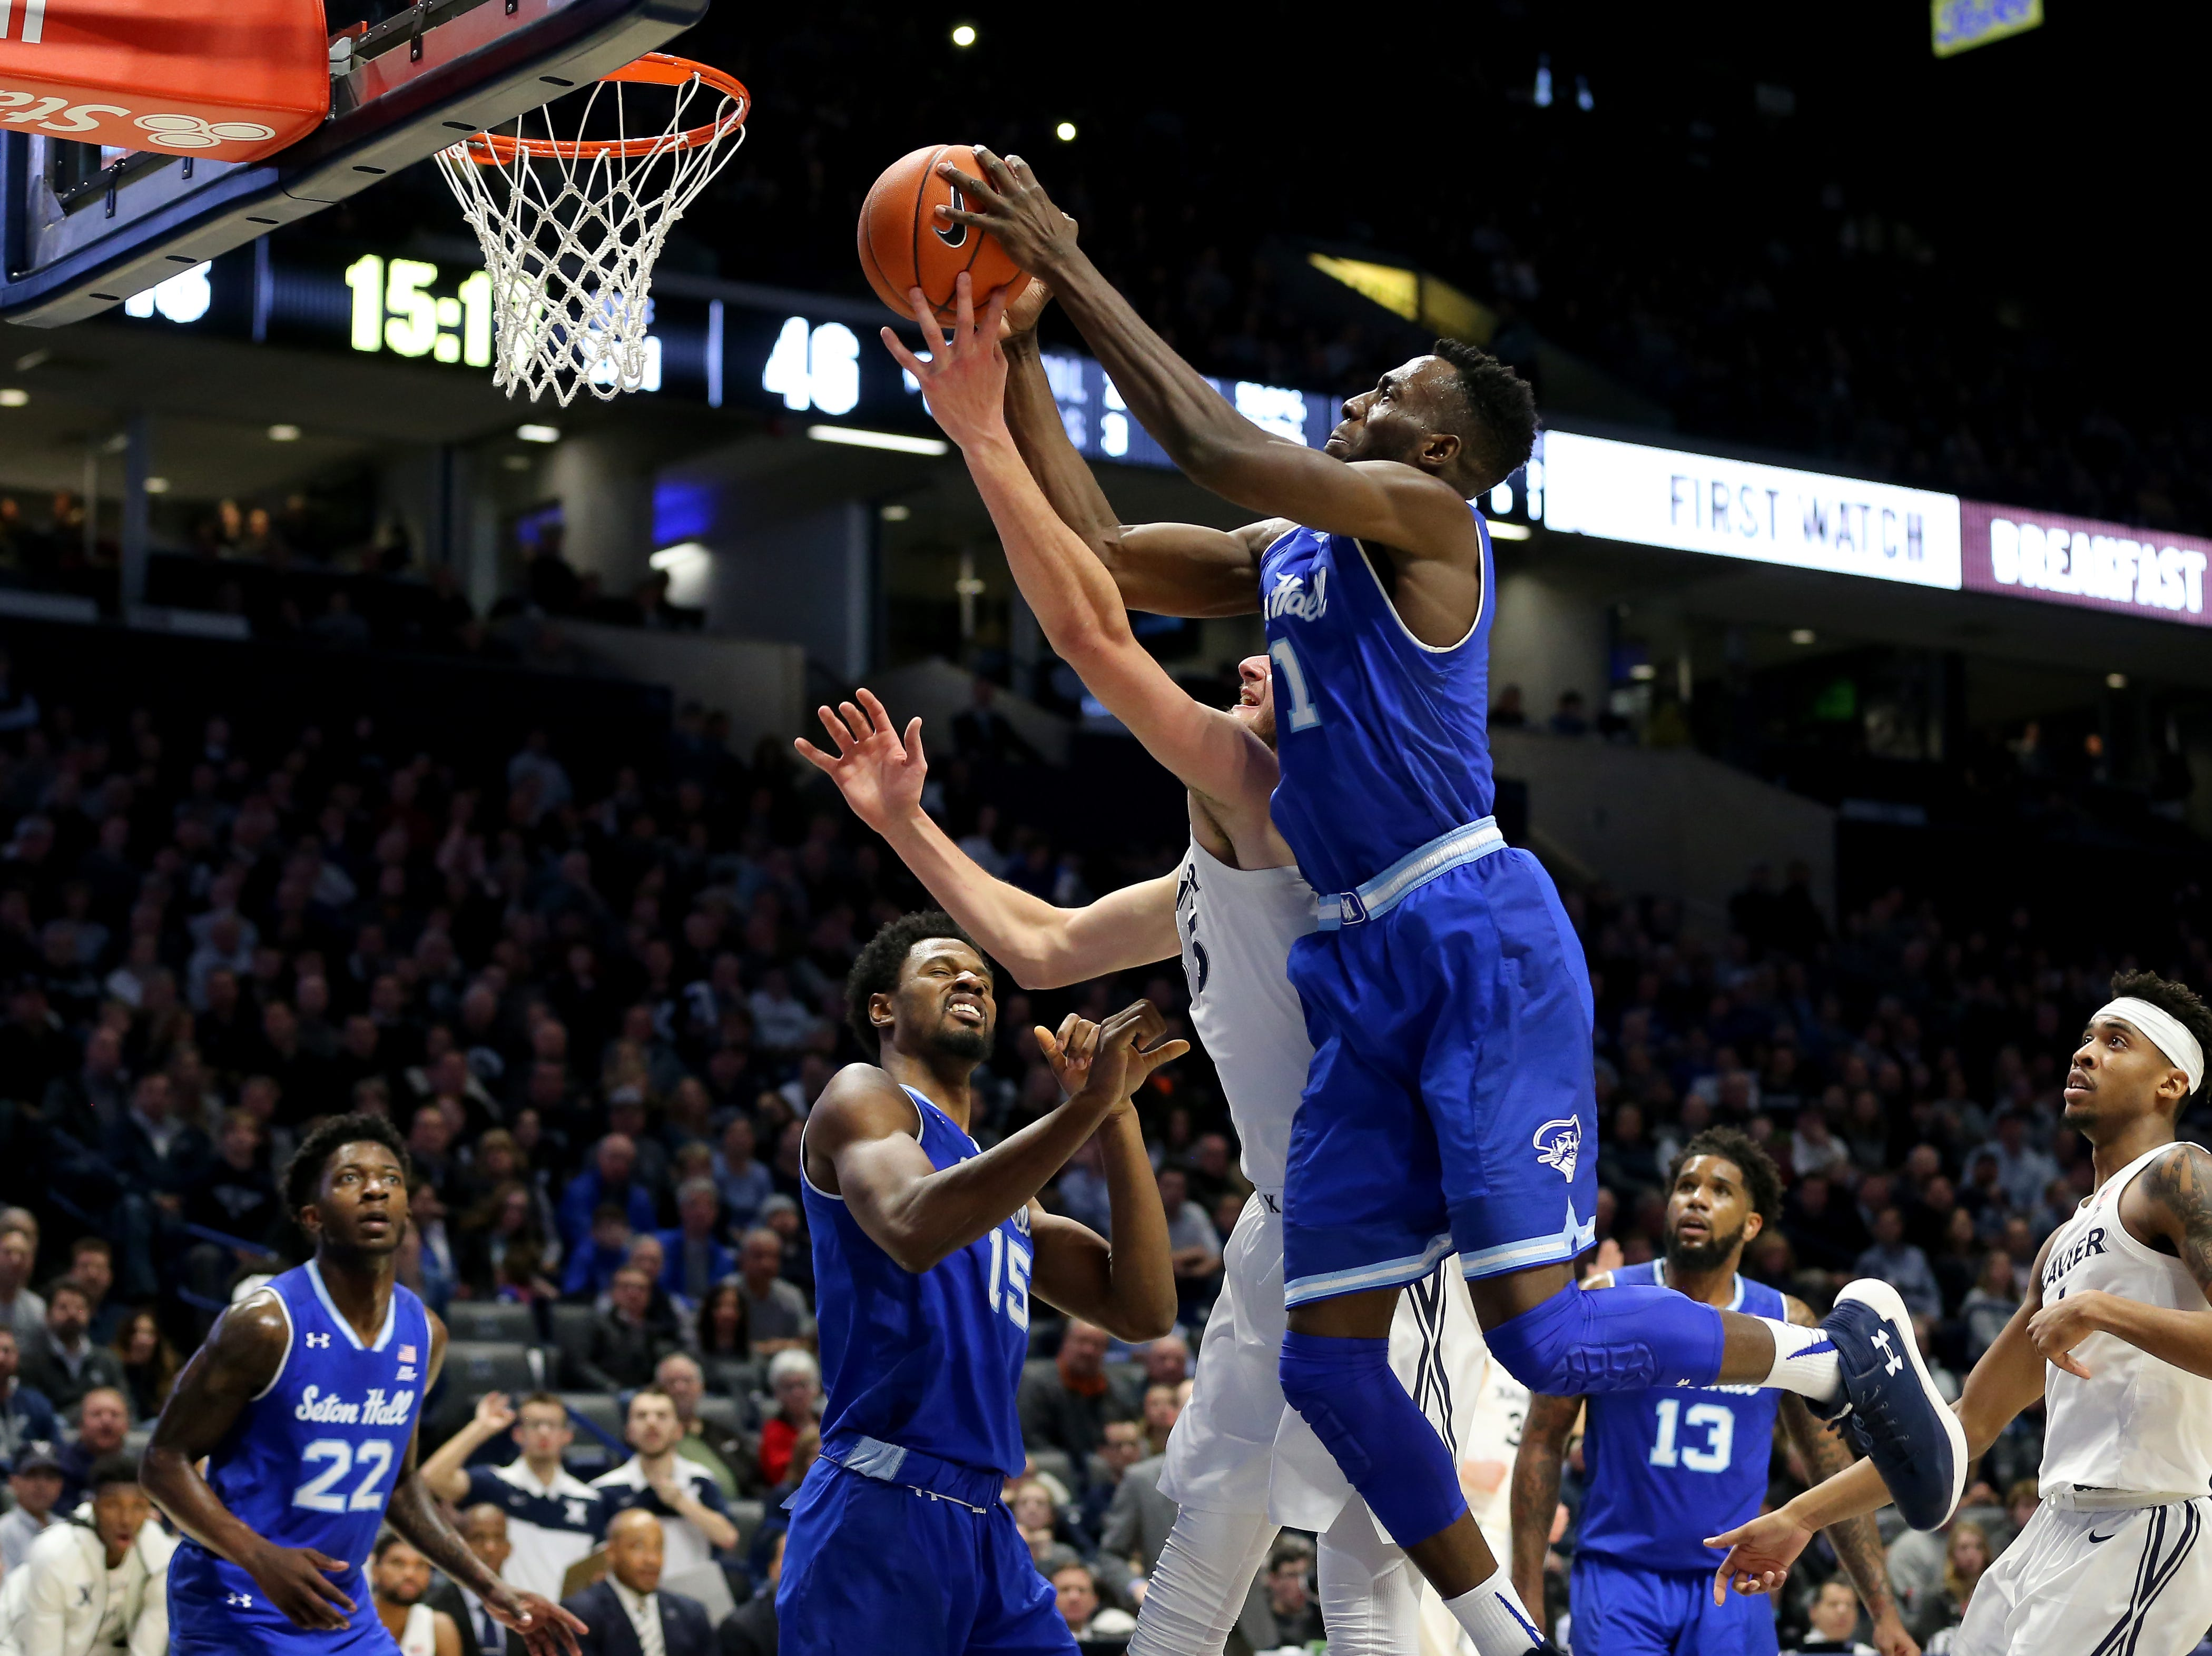 Seton Hall Pirates forward Michael Nzei (1) pulls down a rebound over Xavier Musketeers forward Zach Hankins (35) in the second half of an NCAA college basketball game, Wednesday, Jan. 2, 2019, at the Cintas Center in Cincinnati. Seton Hall won 80-70.